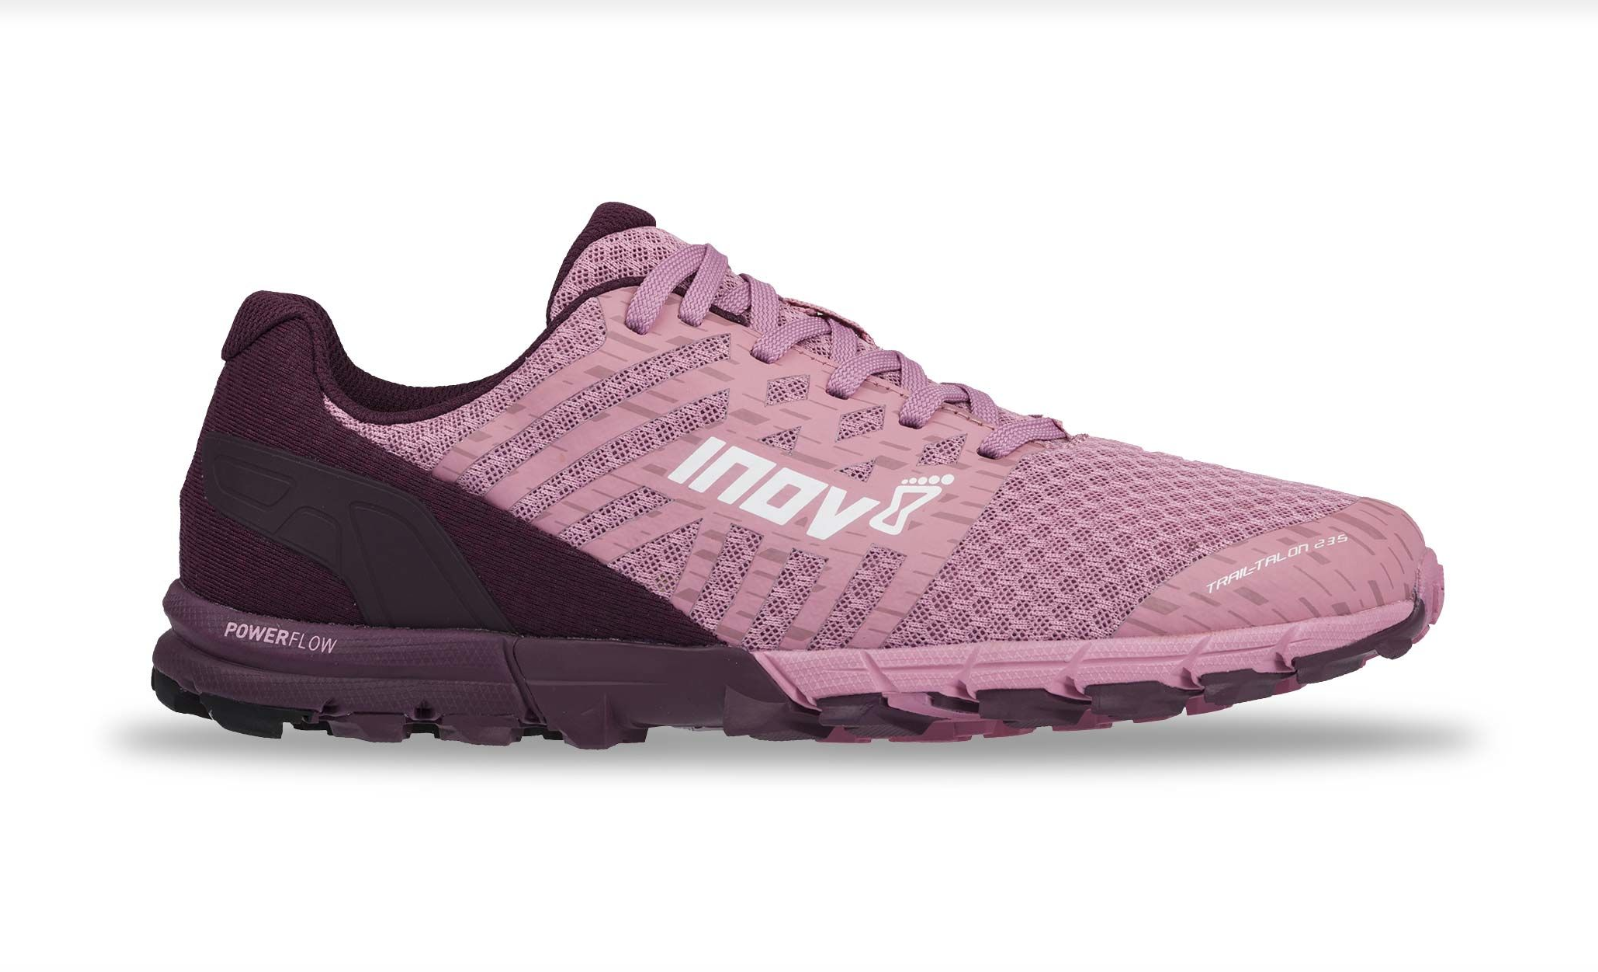 7c1f60a33f Best Inov-8 Running Shoes 2019 | Inov-8 Shoes for Road and Trail